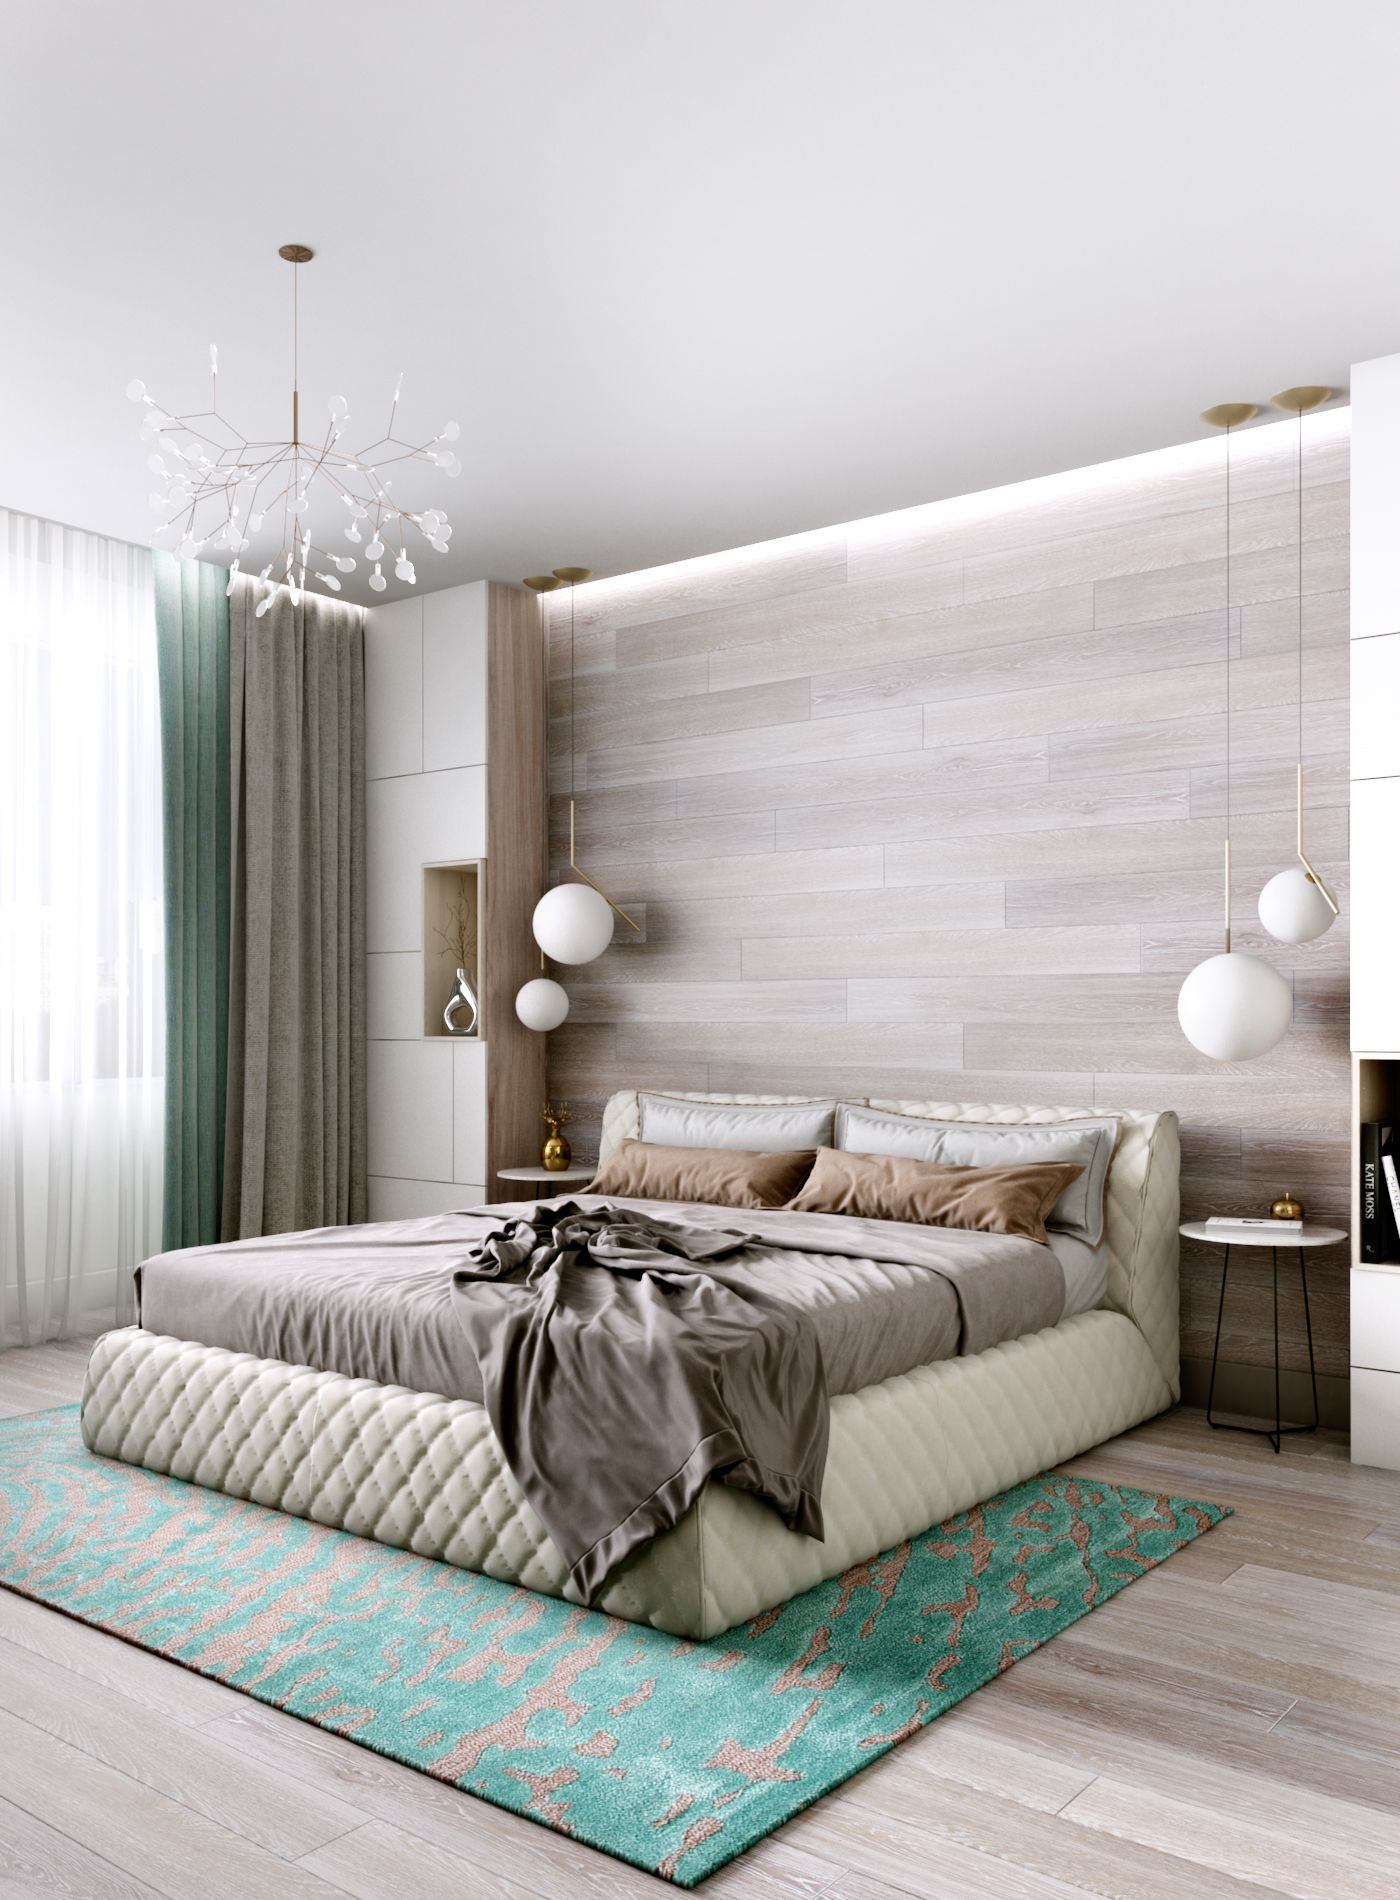 bedroom on behance bedroom bedroom bedroom decor bedroom lighting rh pinterest com